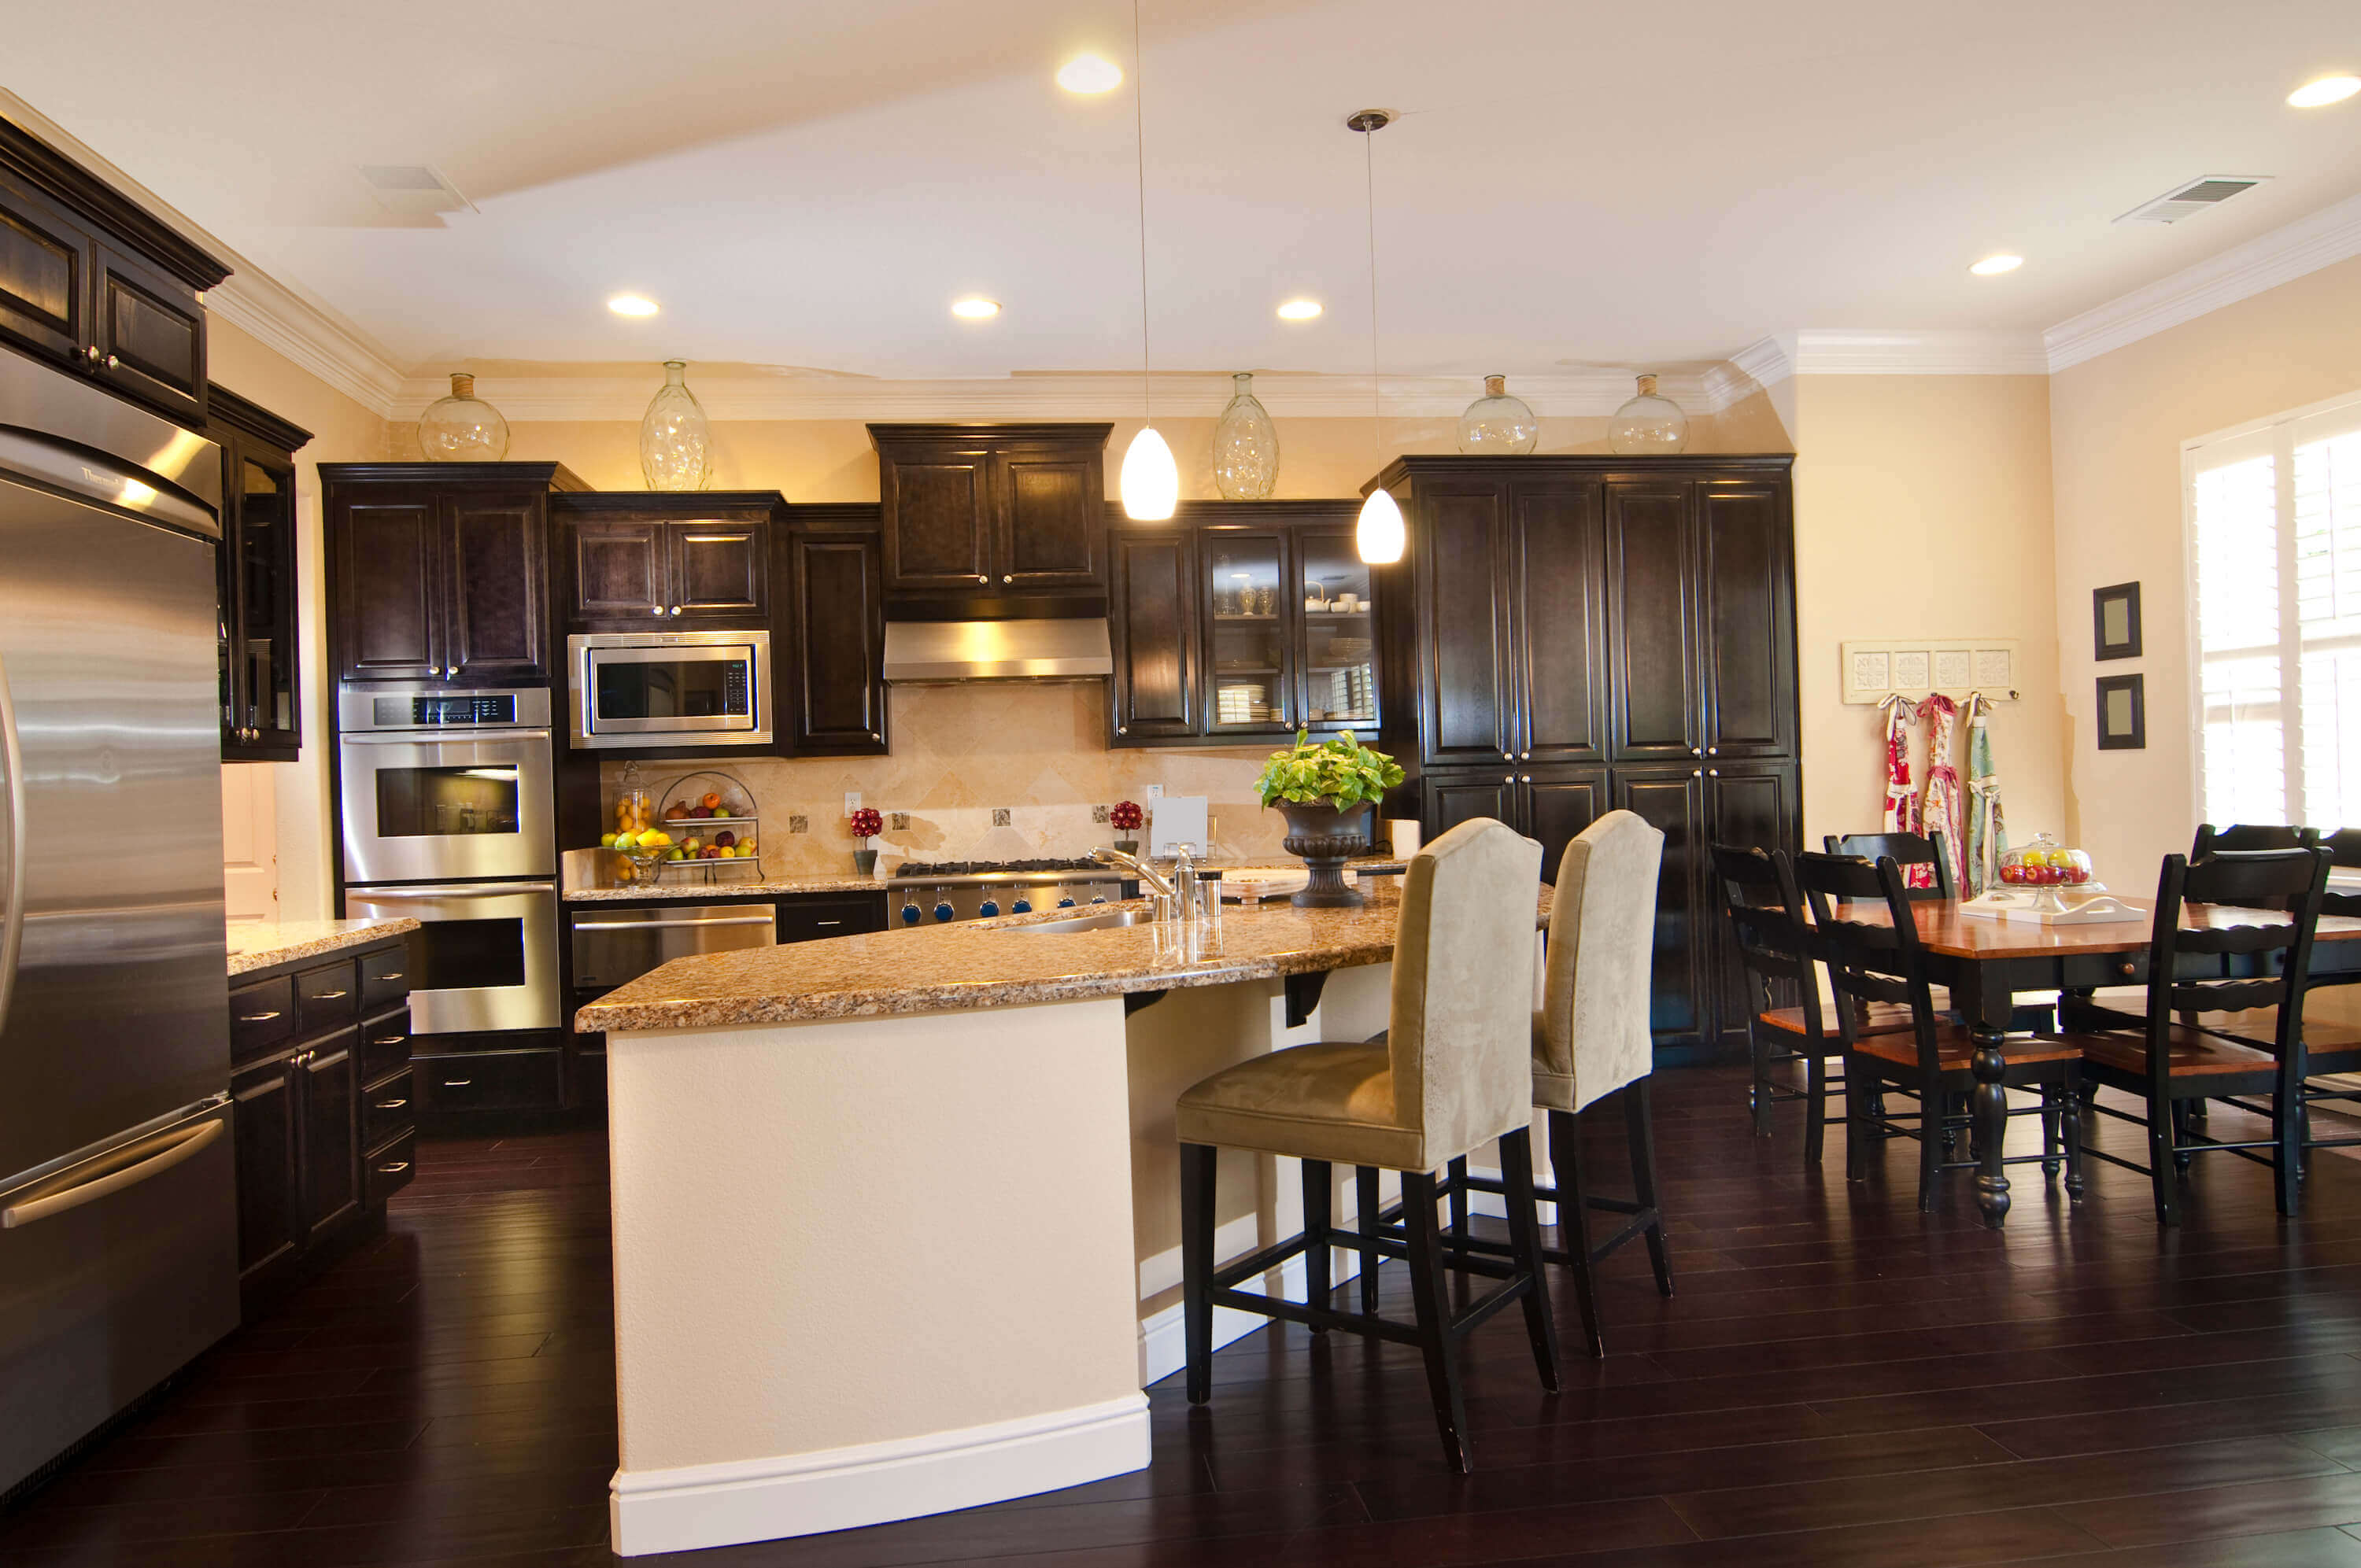 Rich chocolate brown cabinets add beautiful contrast to this contemporary kitchen. Stunning cream granite tops the counters as silver appliance, modern granite backsplash, and hardwood floors completes the sleek look of this awesome contemporary kitchen design idea